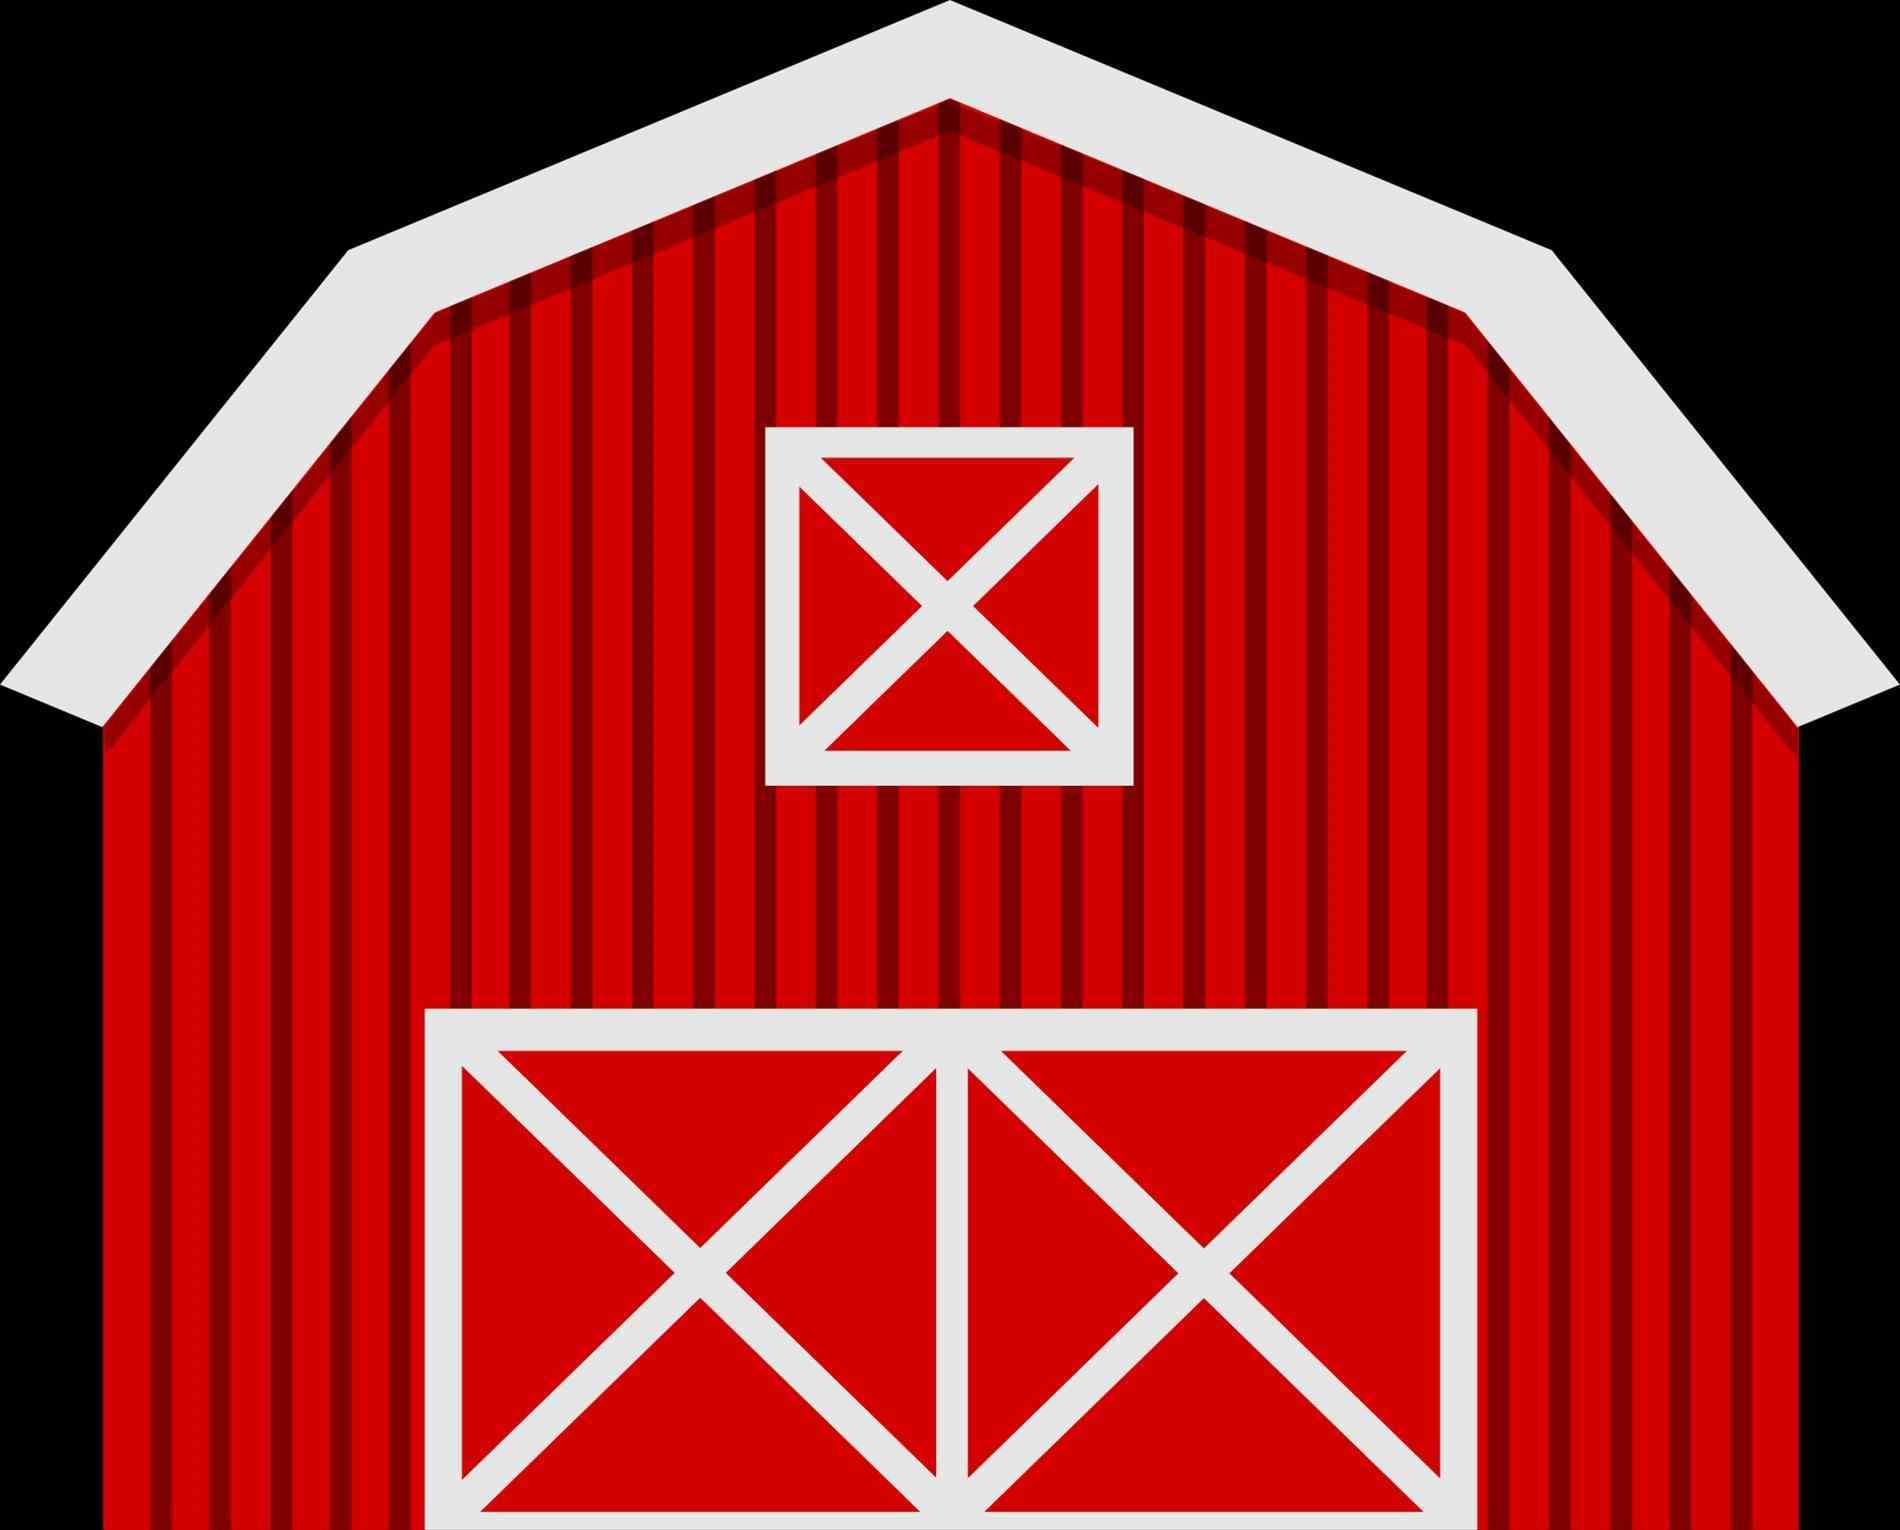 Barn clipart basic. Red at getdrawings com